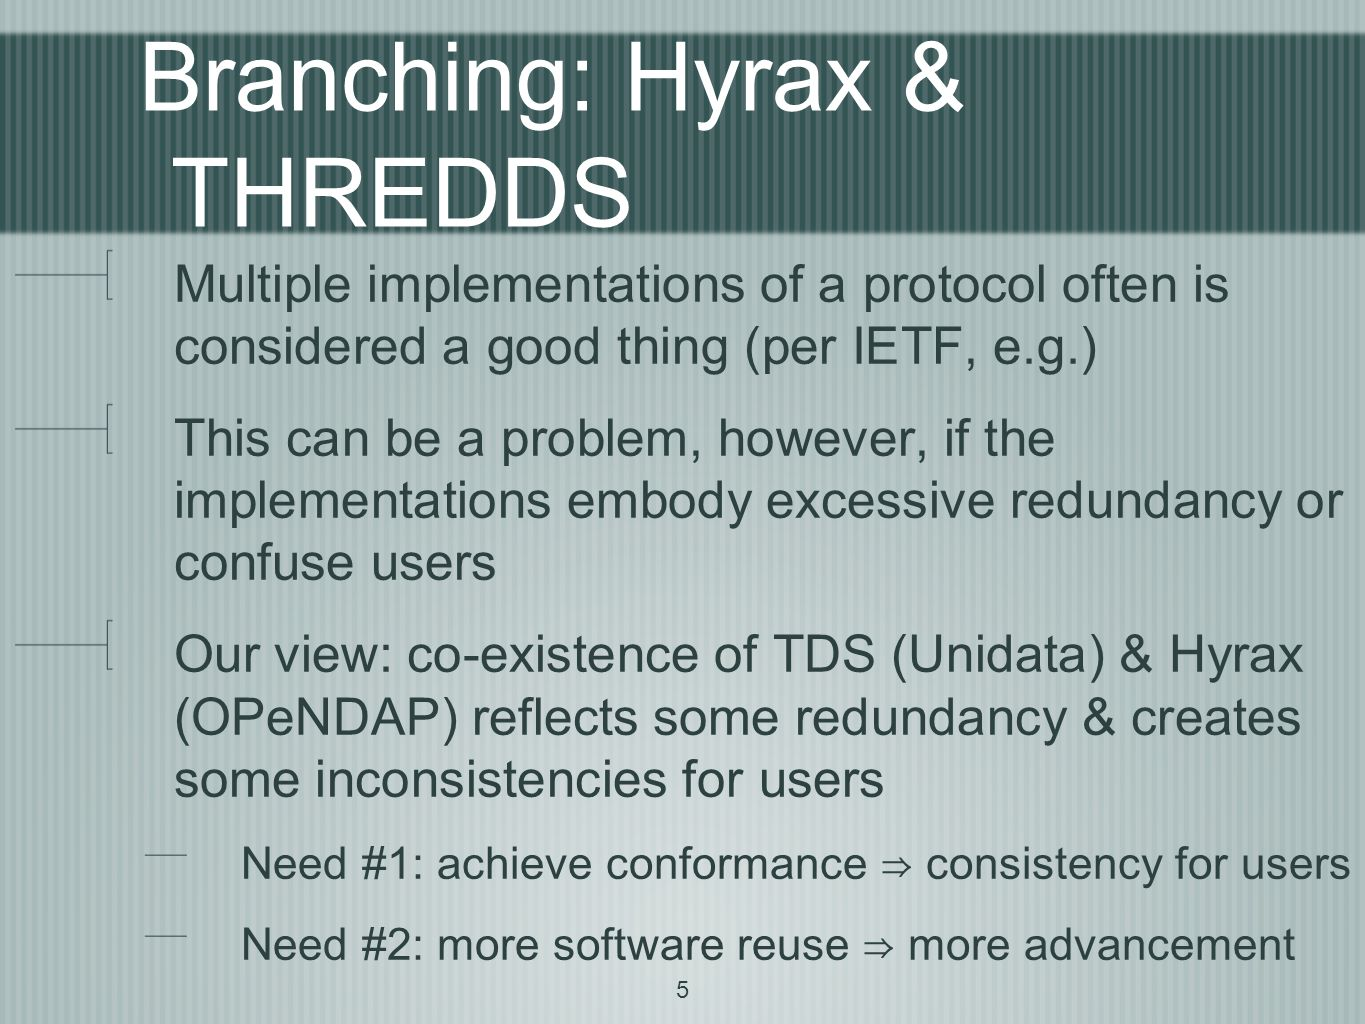 5 Branching: Hyrax & THREDDS Multiple implementations of a protocol often is considered a good thing (per IETF, e.g.) This can be a problem, however, if the implementations embody excessive redundancy or confuse users Our view: co-existence of TDS (Unidata) & Hyrax (OPeNDAP) reflects some redundancy & creates some inconsistencies for users Need #1: achieve conformance ⇒ consistency for users Need #2: more software reuse ⇒ more advancement